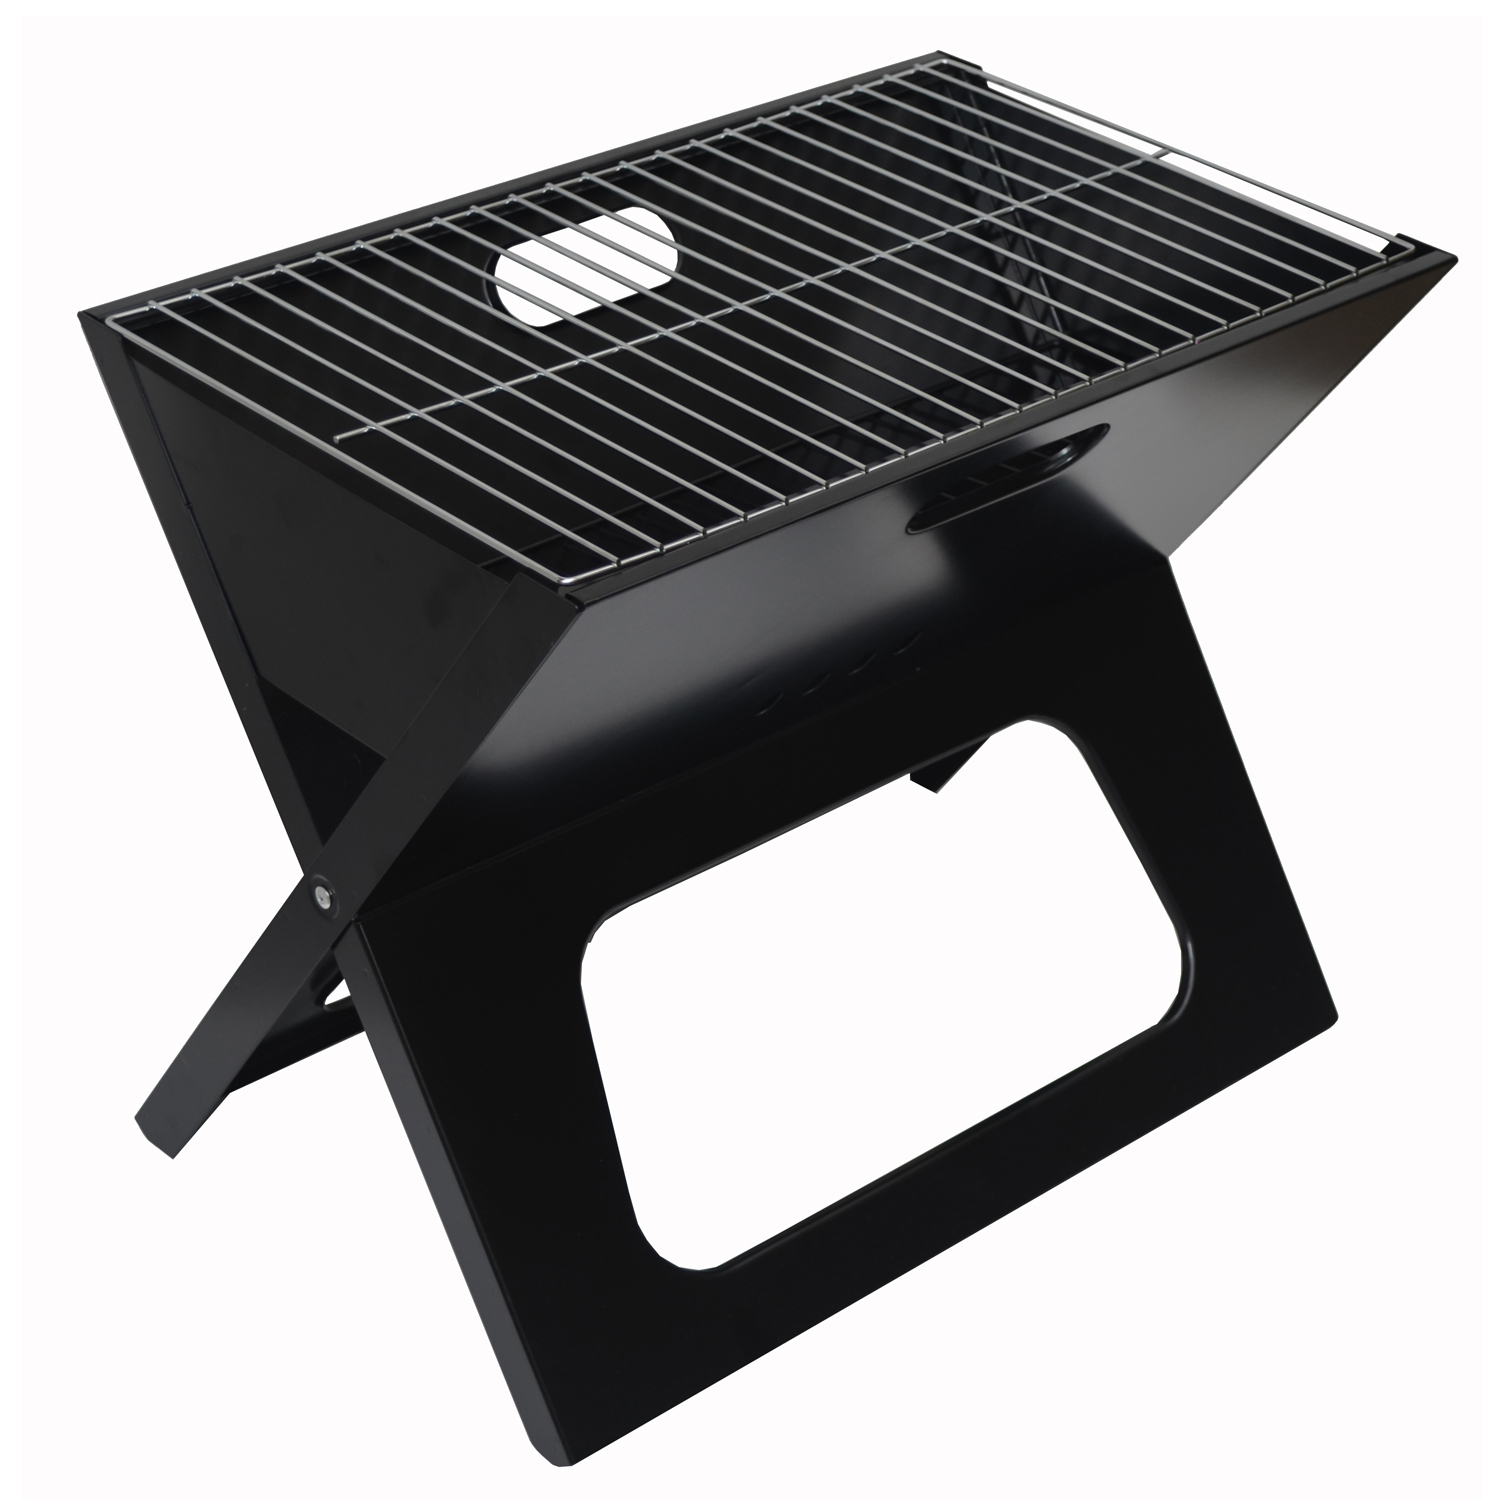 Picnic At Ascot Stealth Portable Grill